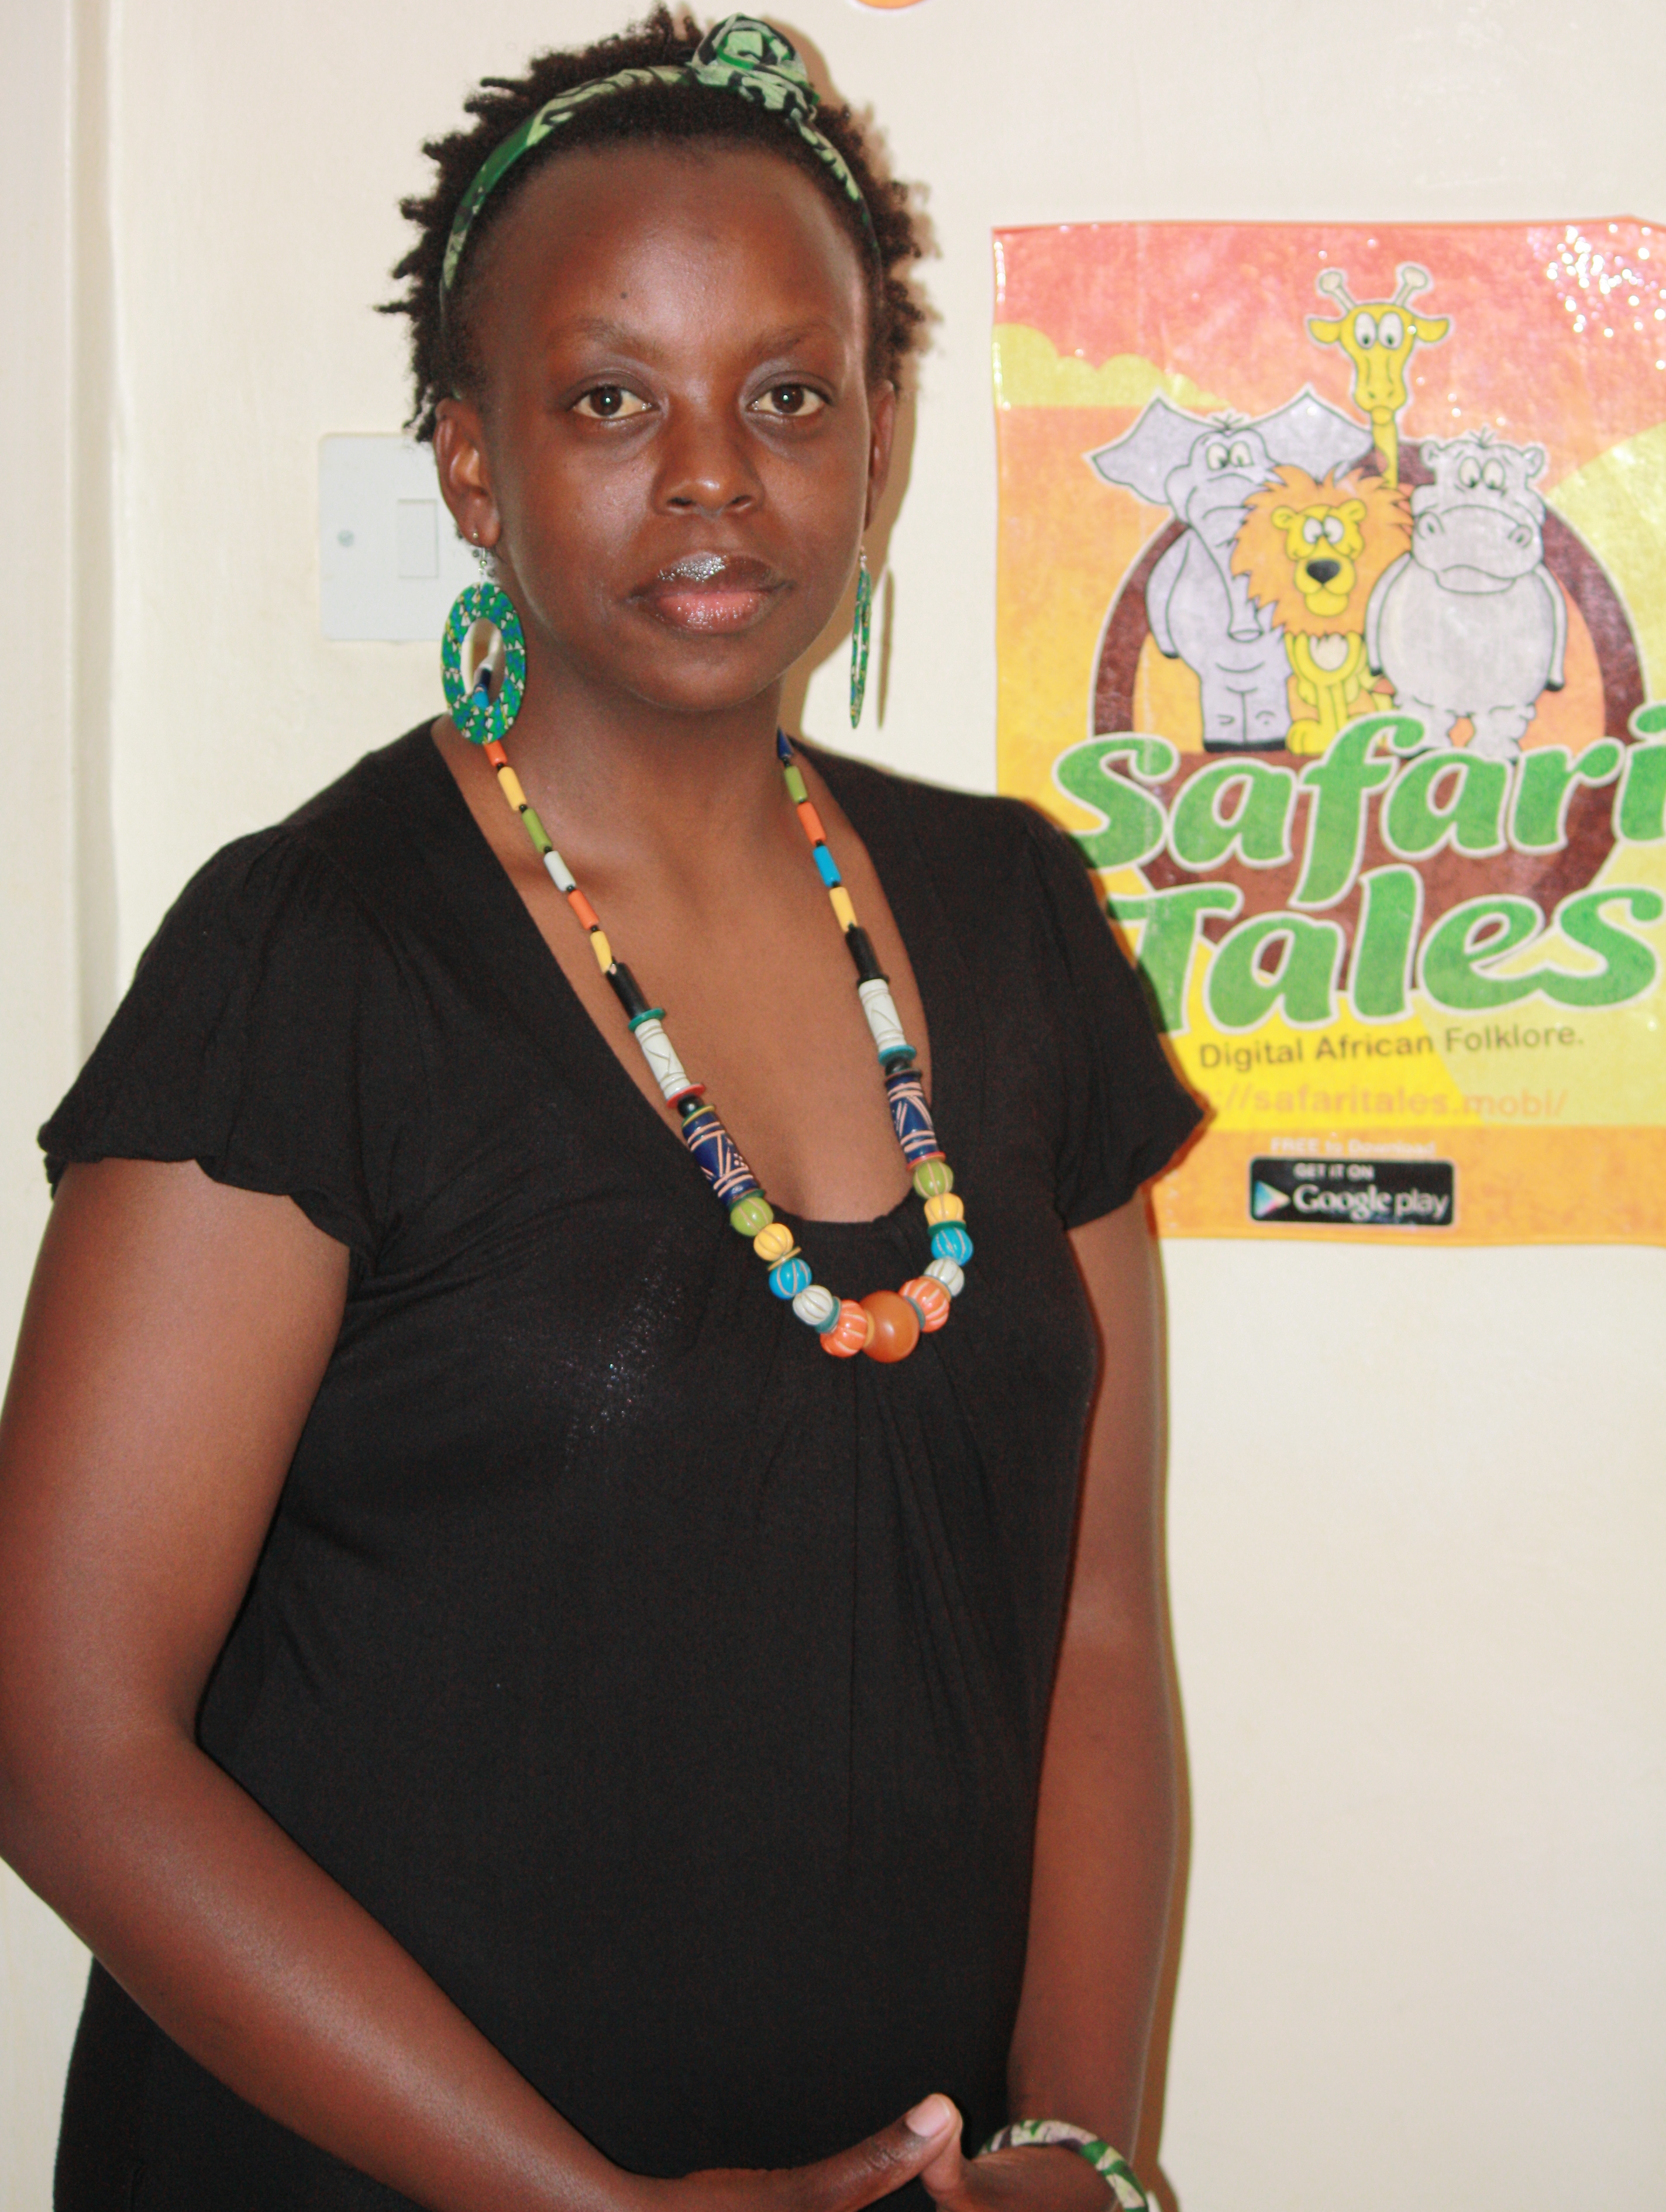 From a Poet to a Female Entrepreneur, pursuing preservation of African Heritage